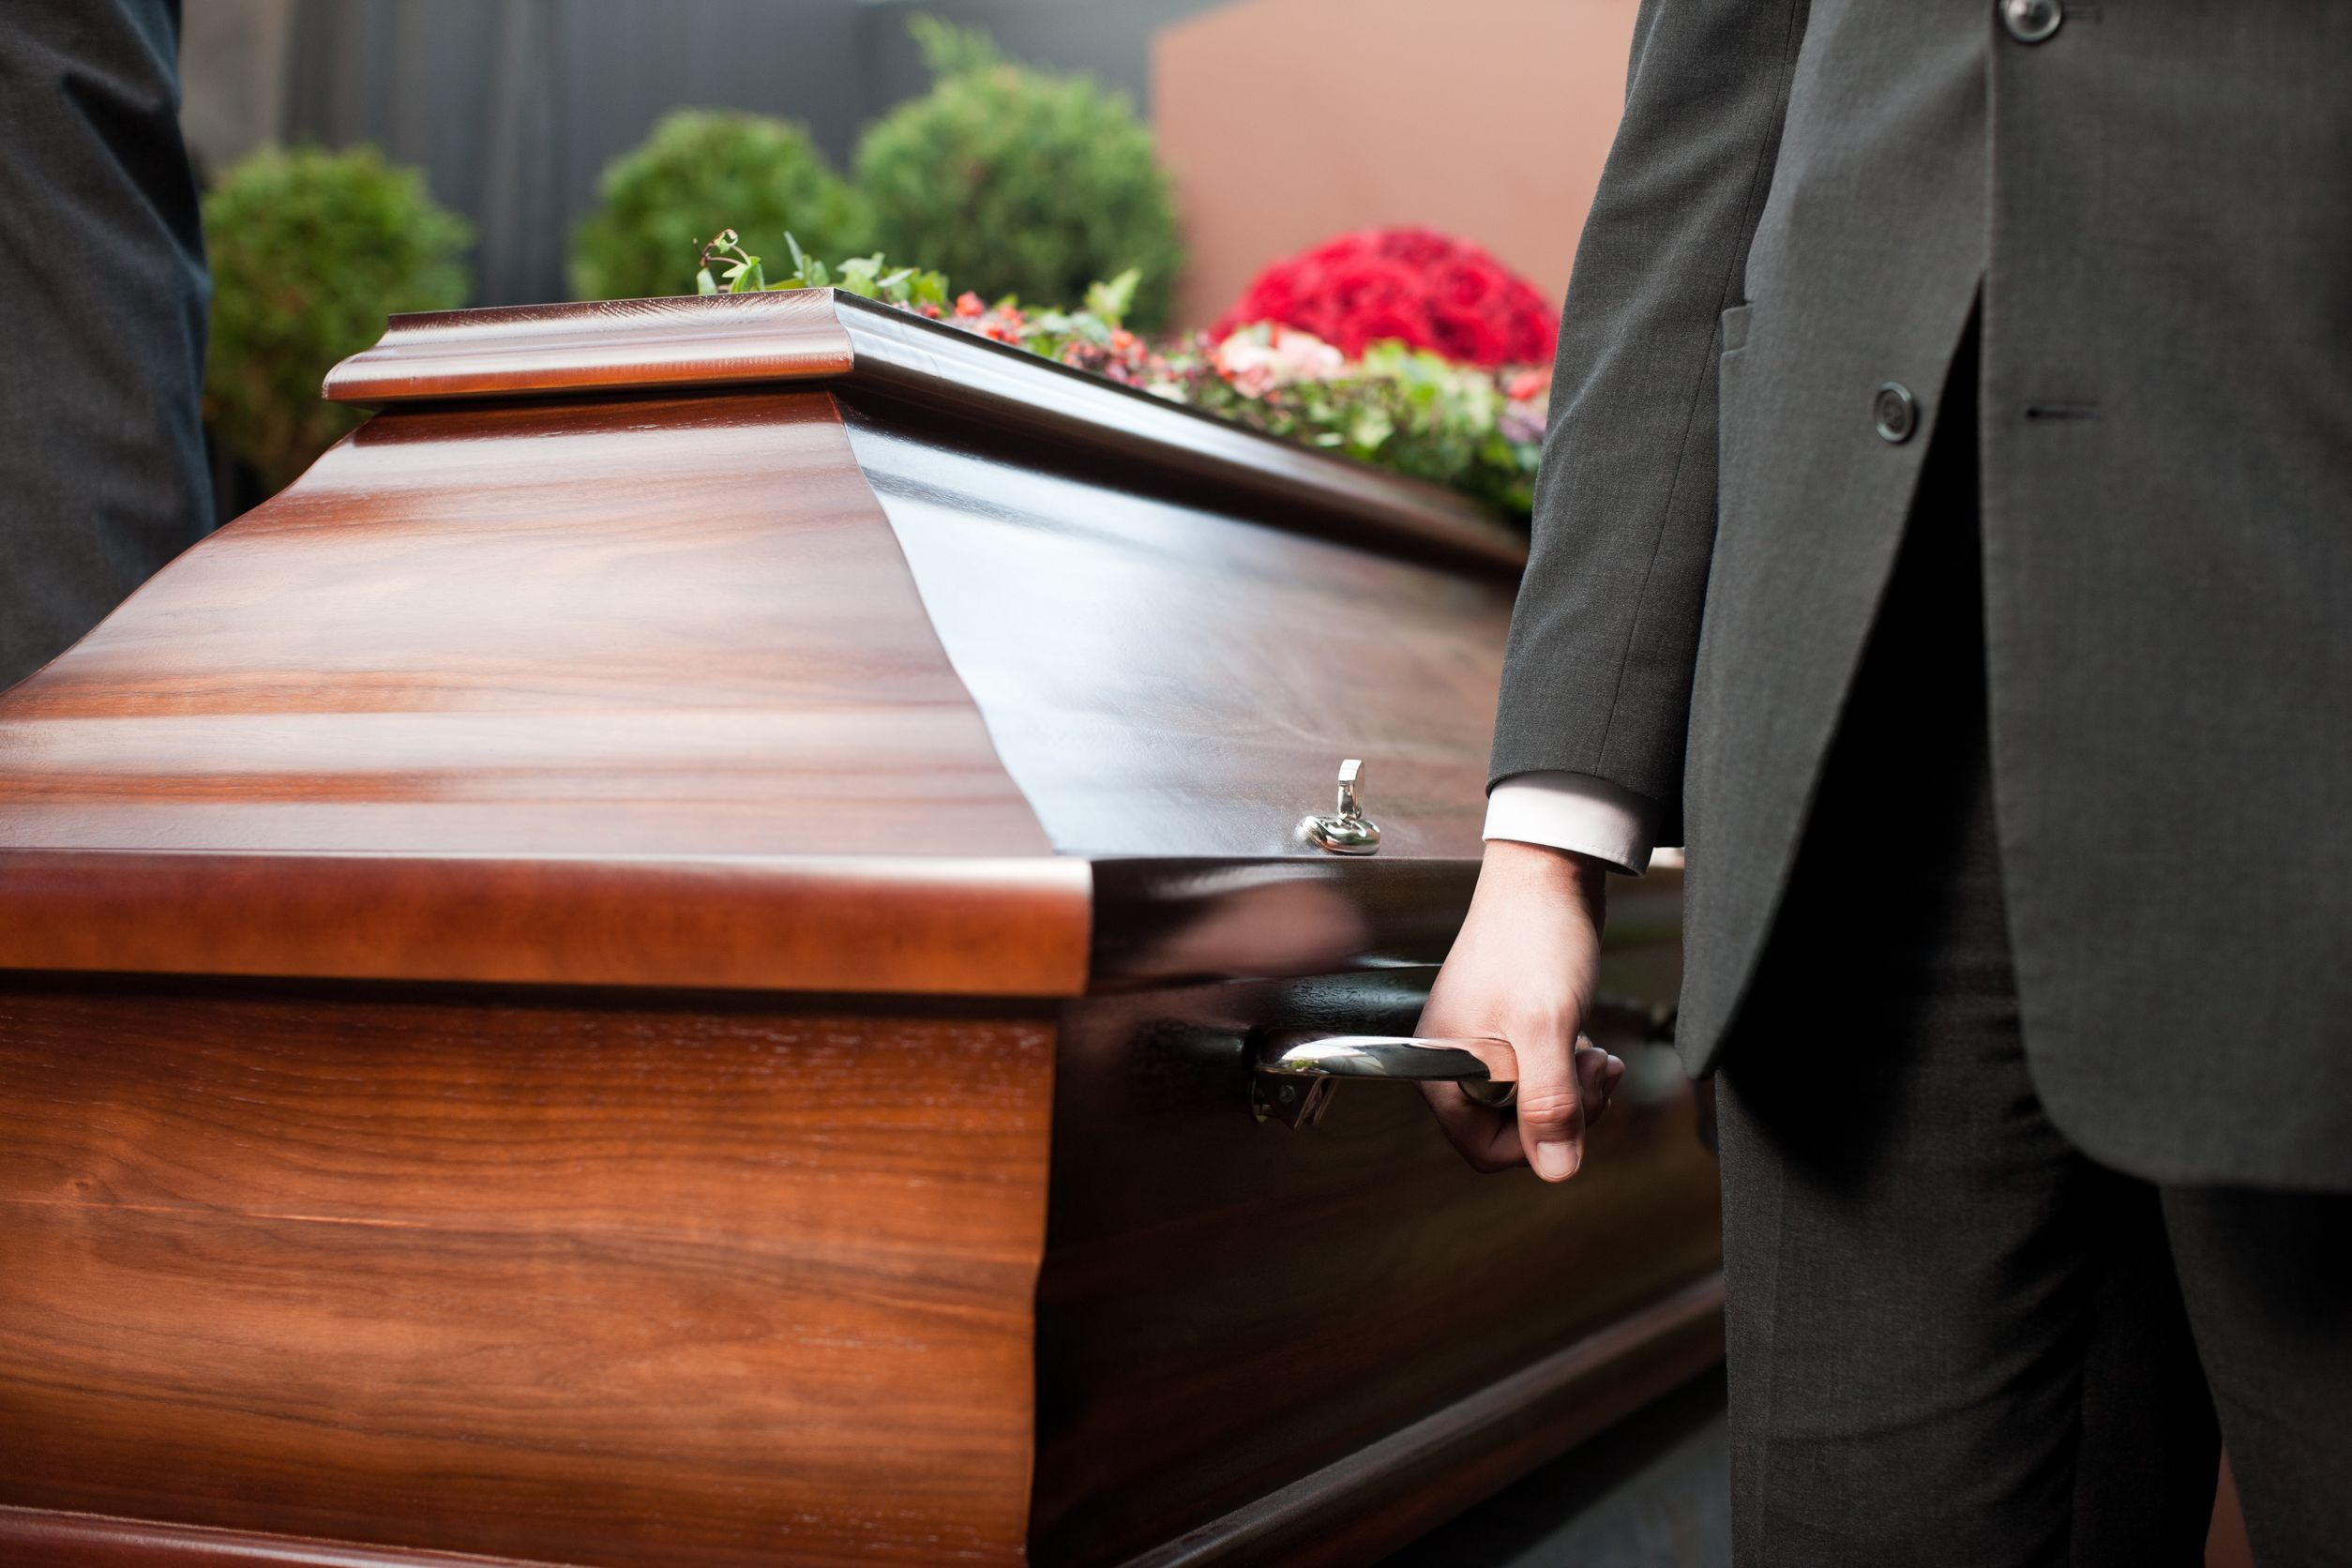 Florida Wrongful Death Claims: What Damages Can You Sue For?